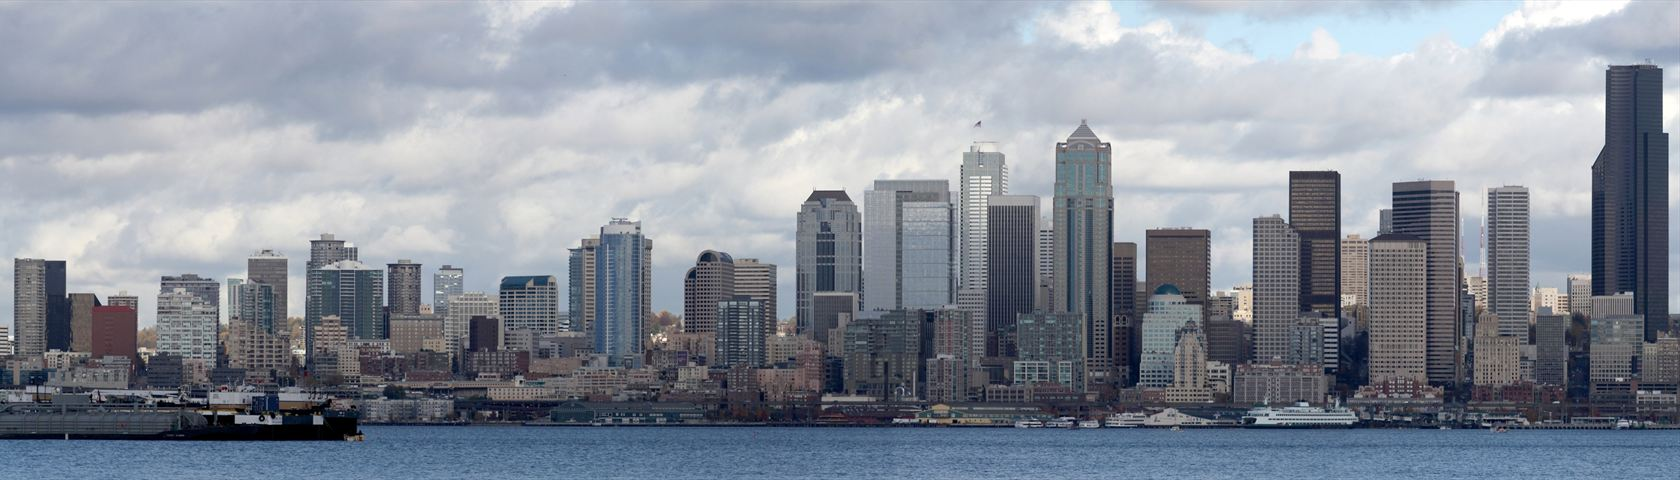 Seattle Images WallpaperFusion WallpaperFusion Binary 1680x480